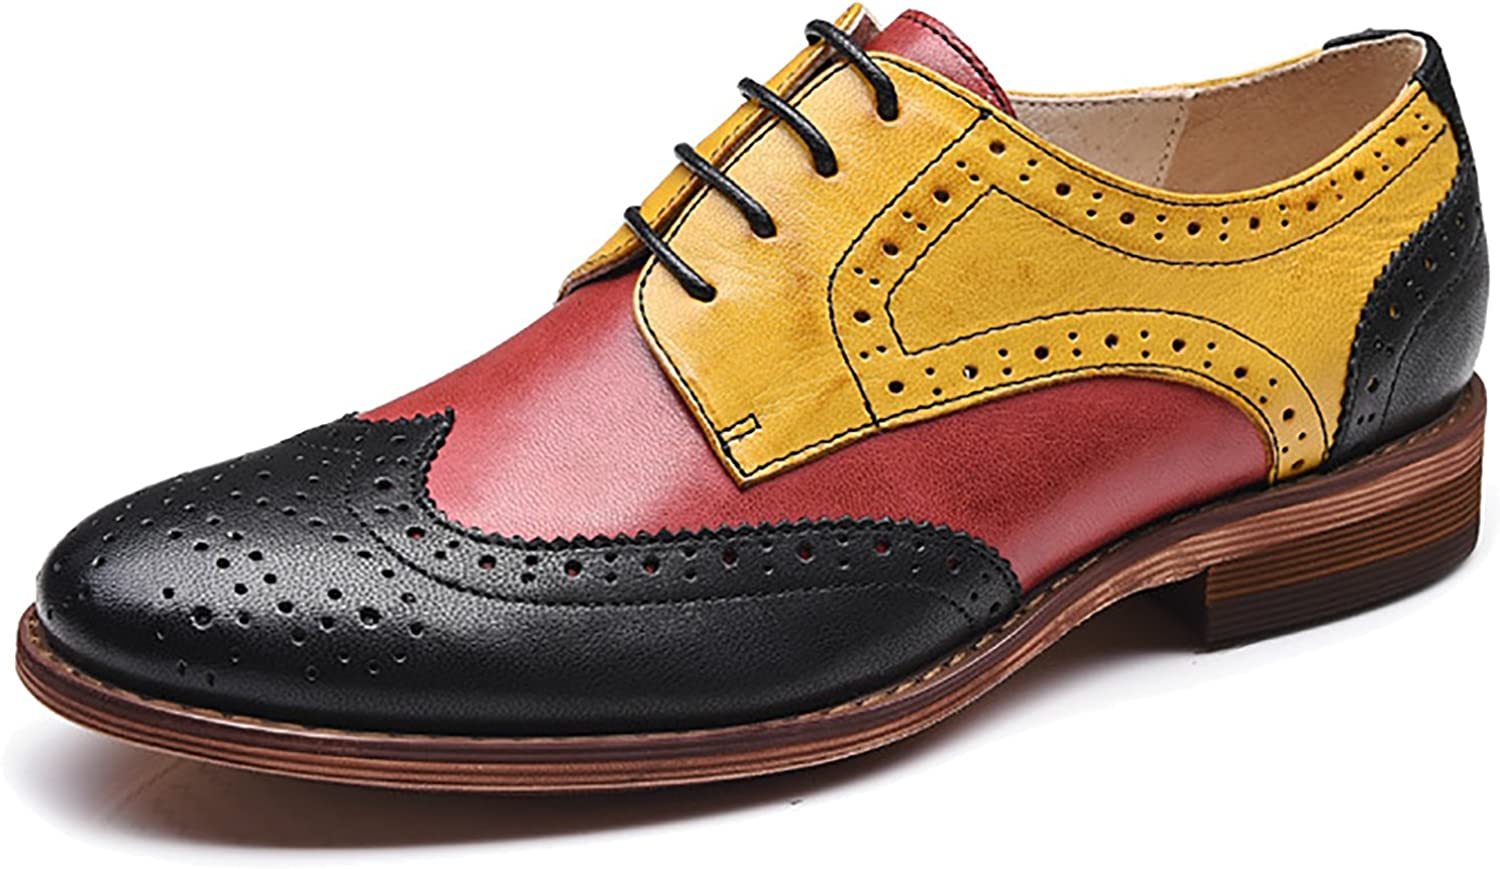 Odema Women's Leather Oxfords Perforated Lace-up Wingtip Low Heel Carving Brogue Dress shoes Oxfords